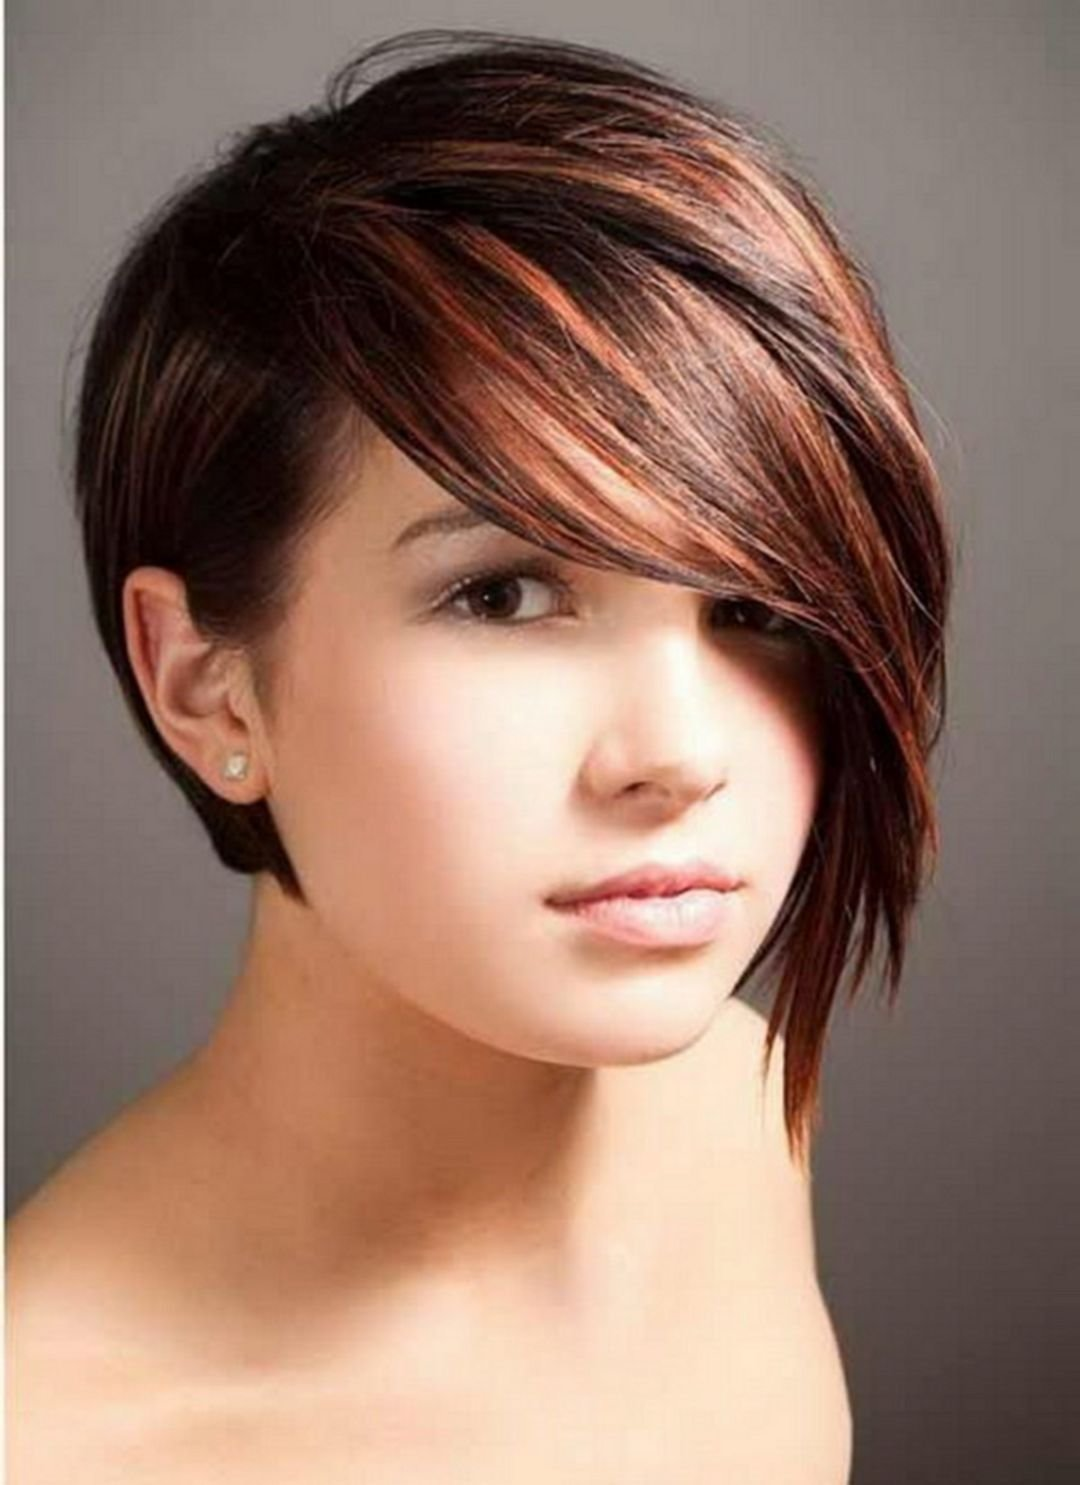 pictures-of-girls-haircuts-girl-video